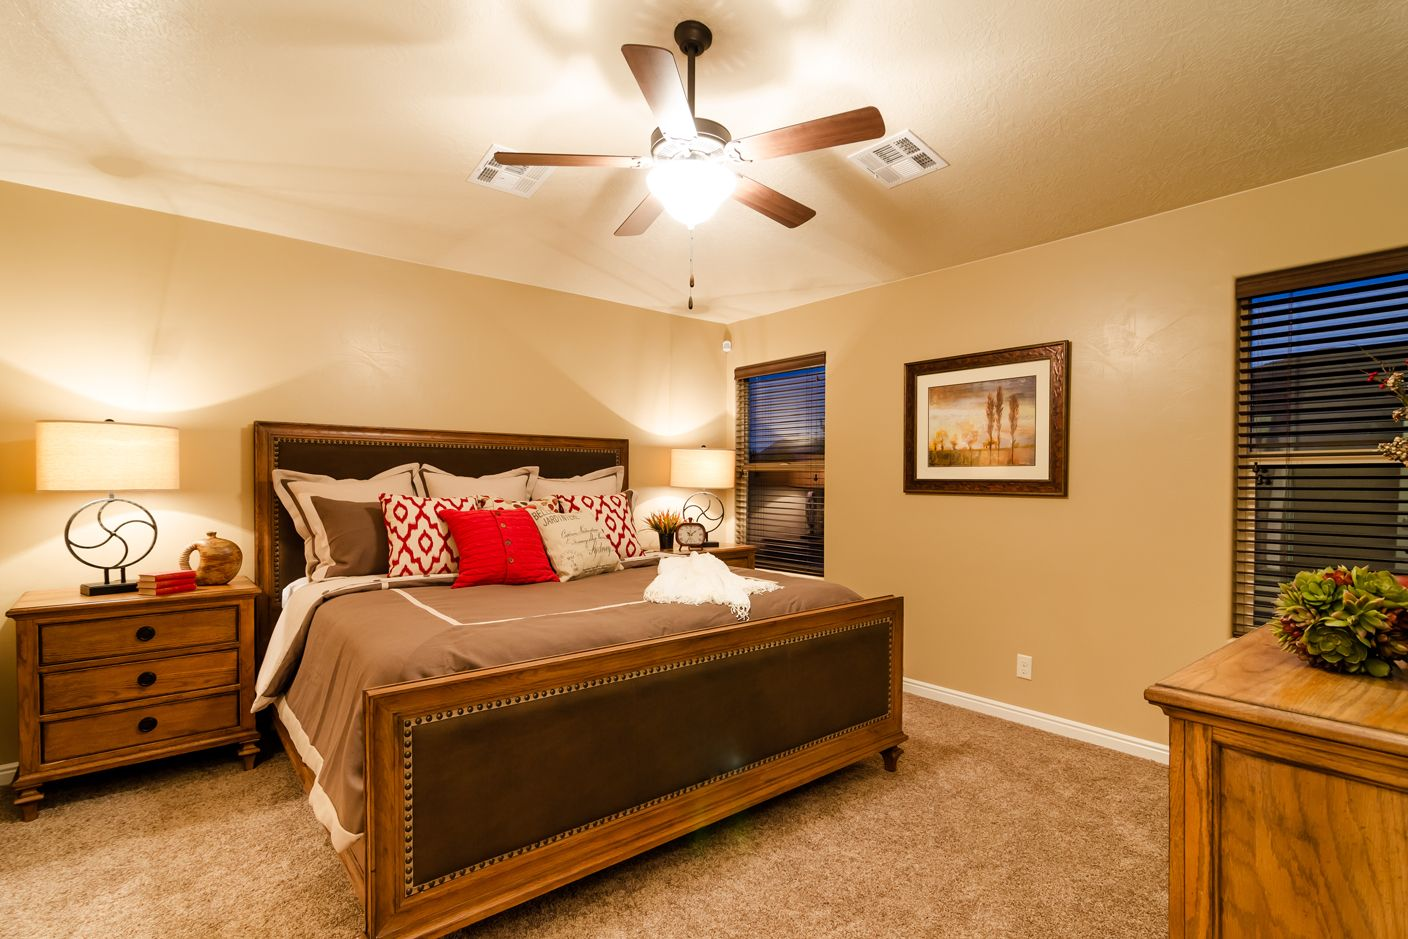 Bedroom featured in the Arroyo Plan 1660 By Ence Homes in St. George, UT